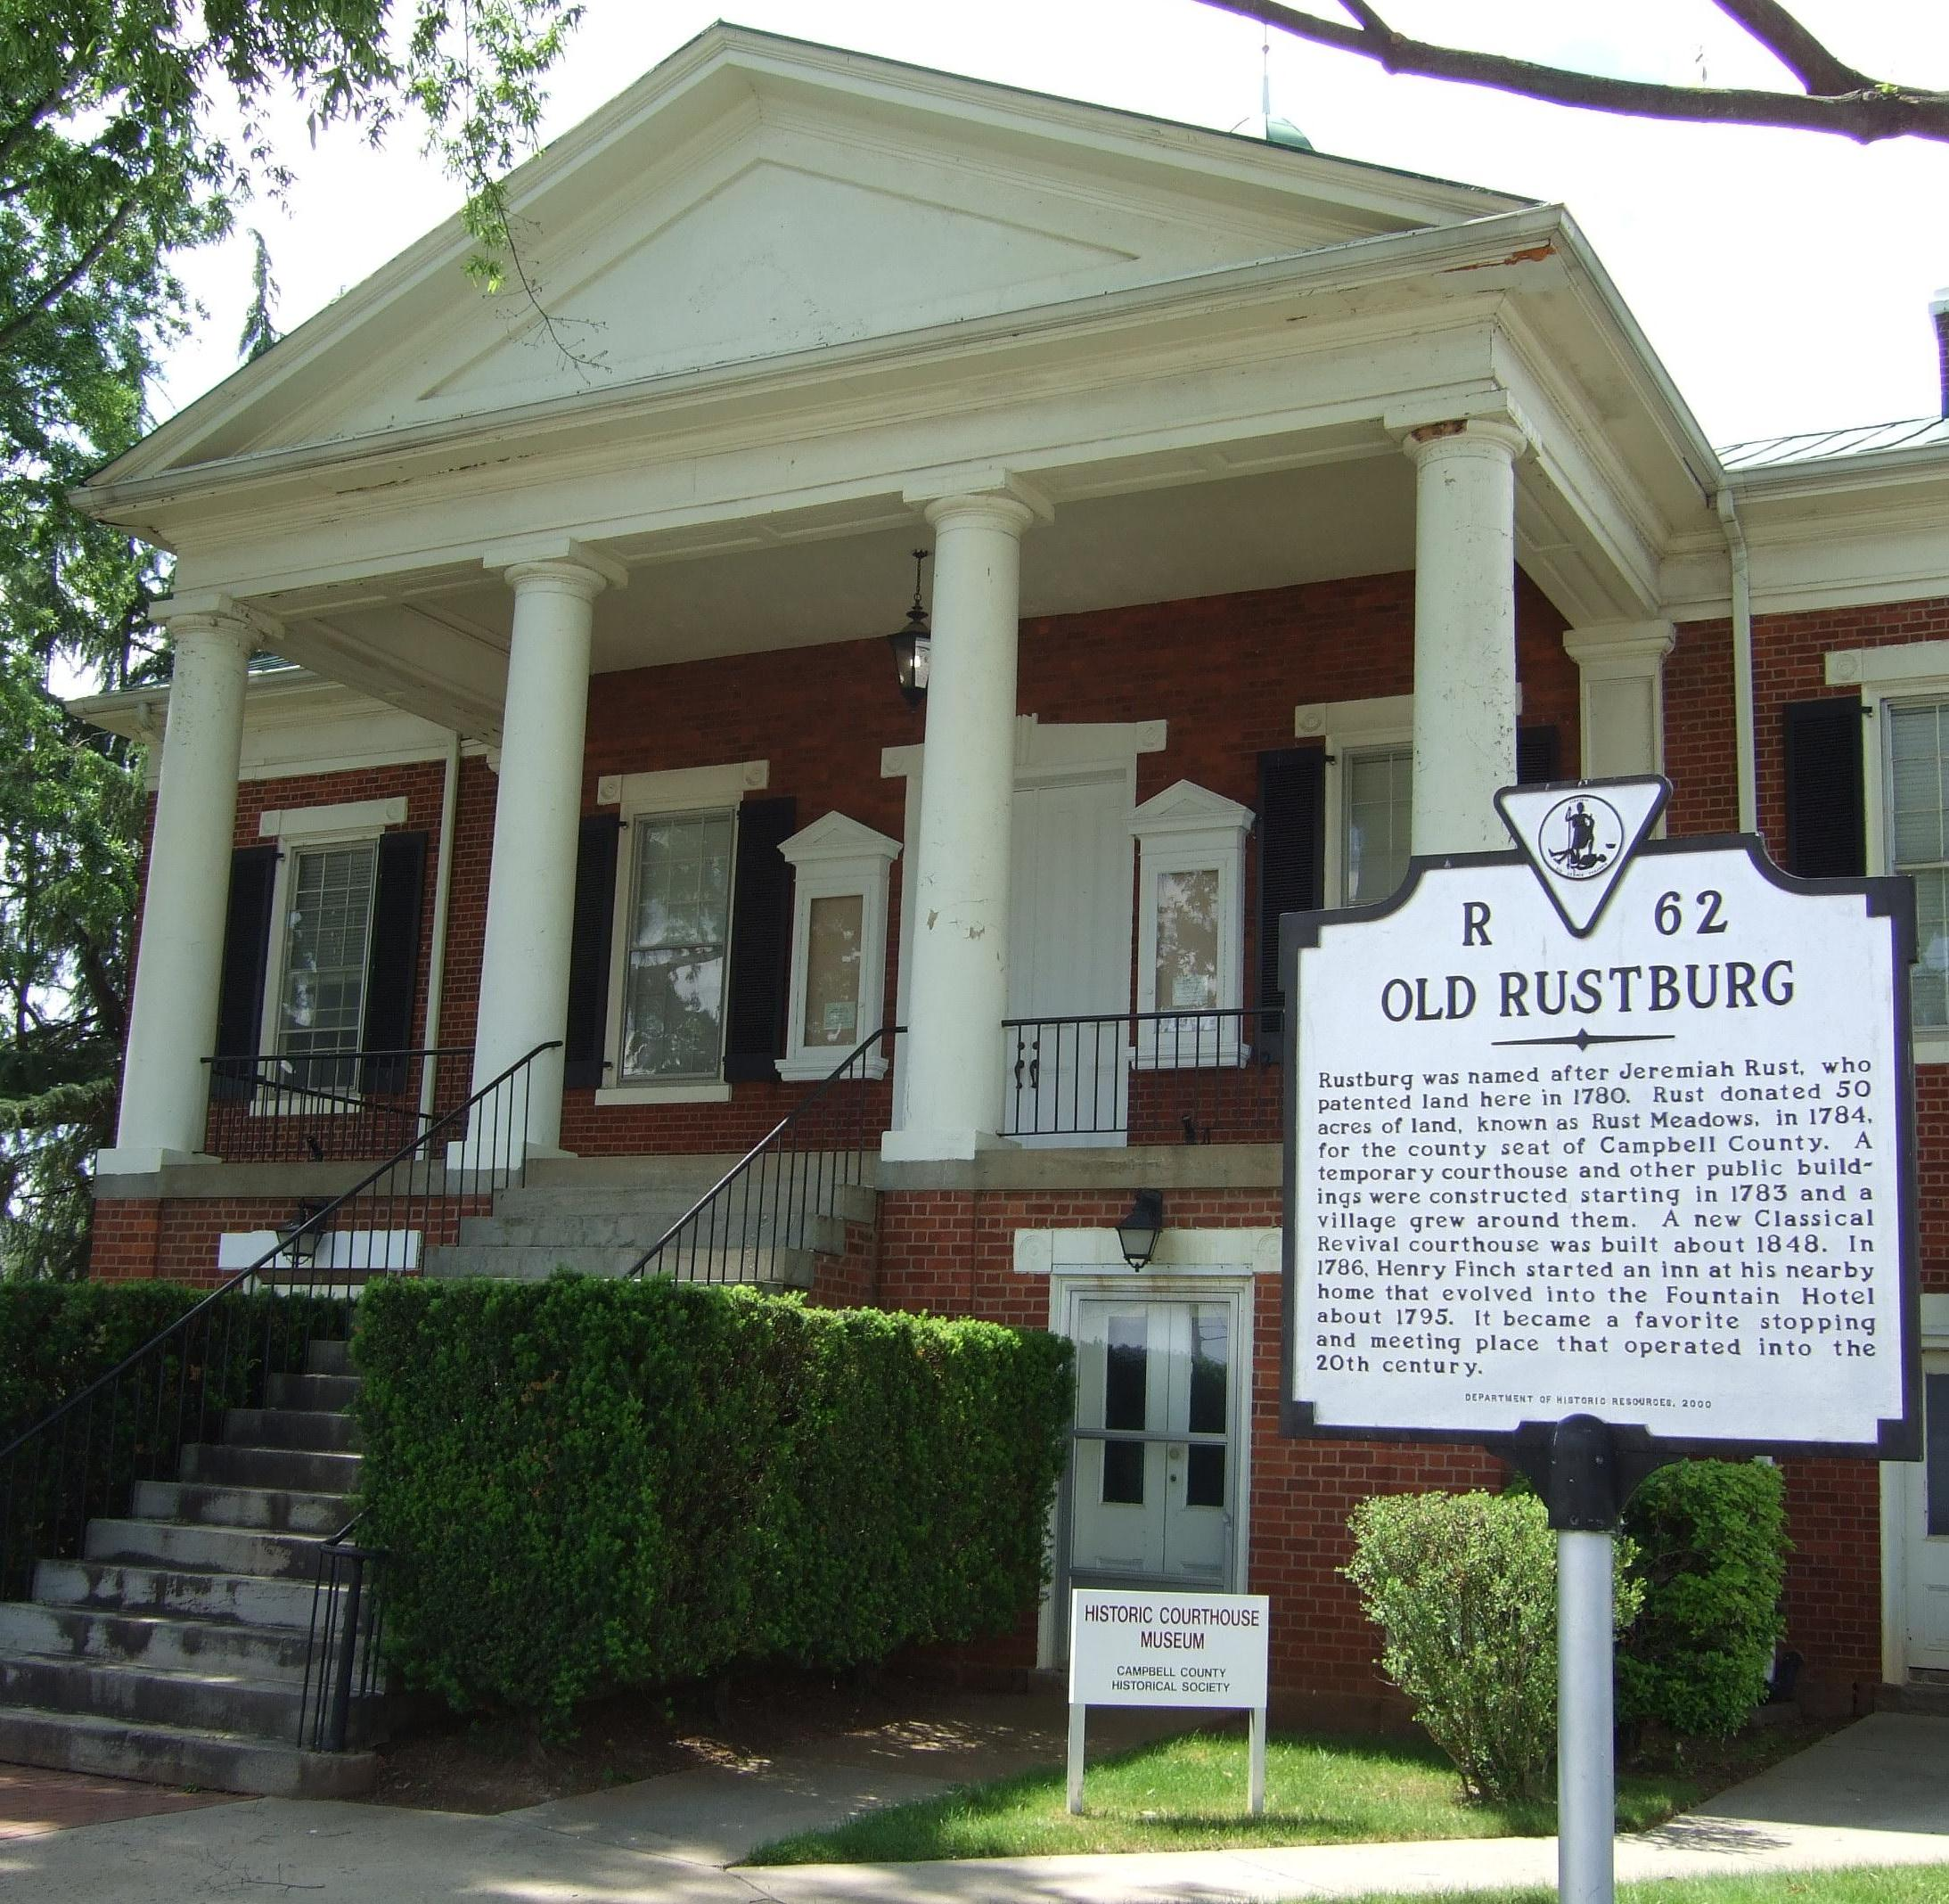 Historic Courthouse - Rustburg (1)